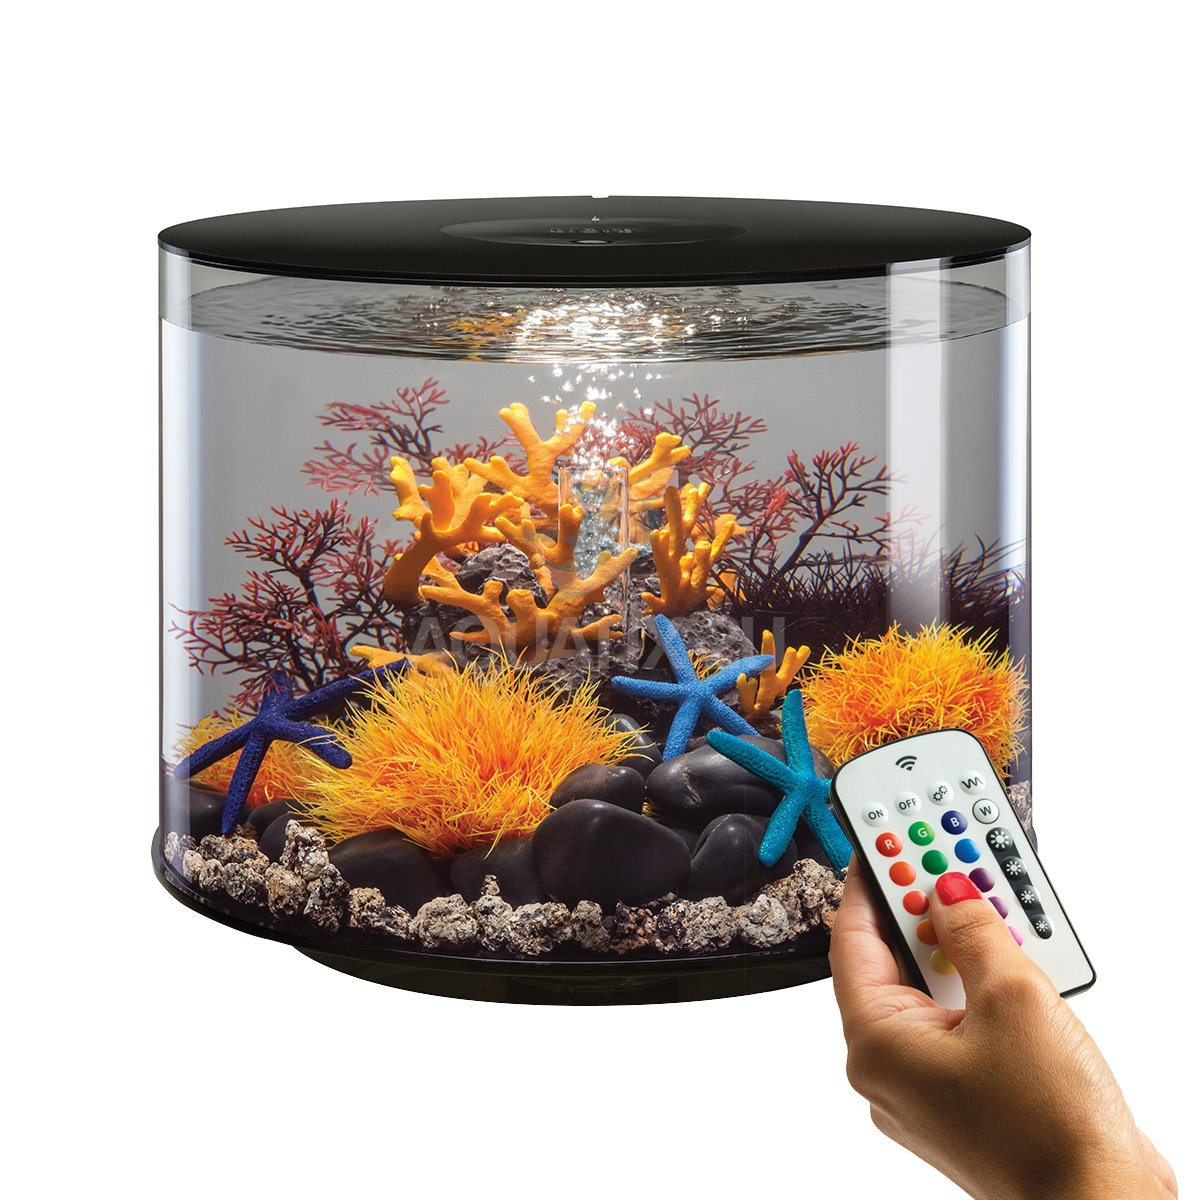 biorb tube 35l schwarz aquarium mit mcr led beleuchtung g nstig kaufen. Black Bedroom Furniture Sets. Home Design Ideas